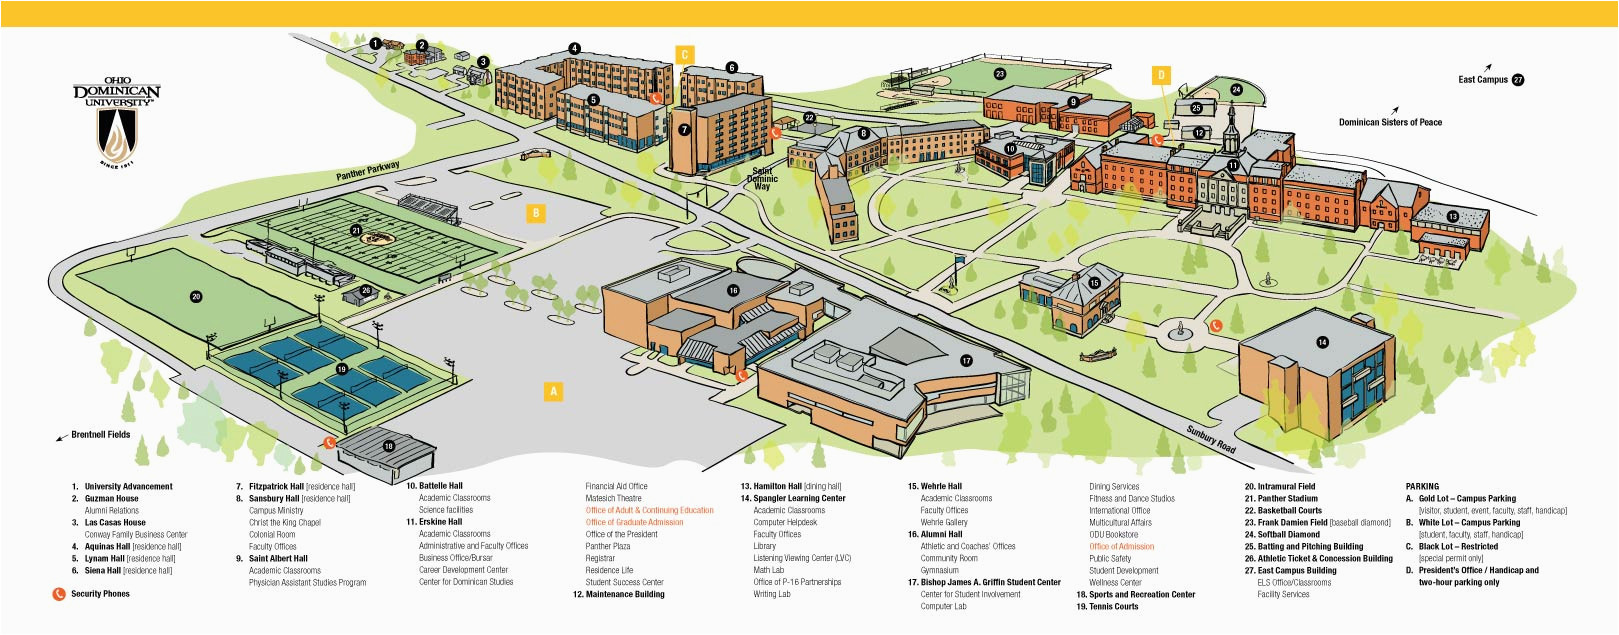 Dominican University Of California Campus Map | secretmuseum on